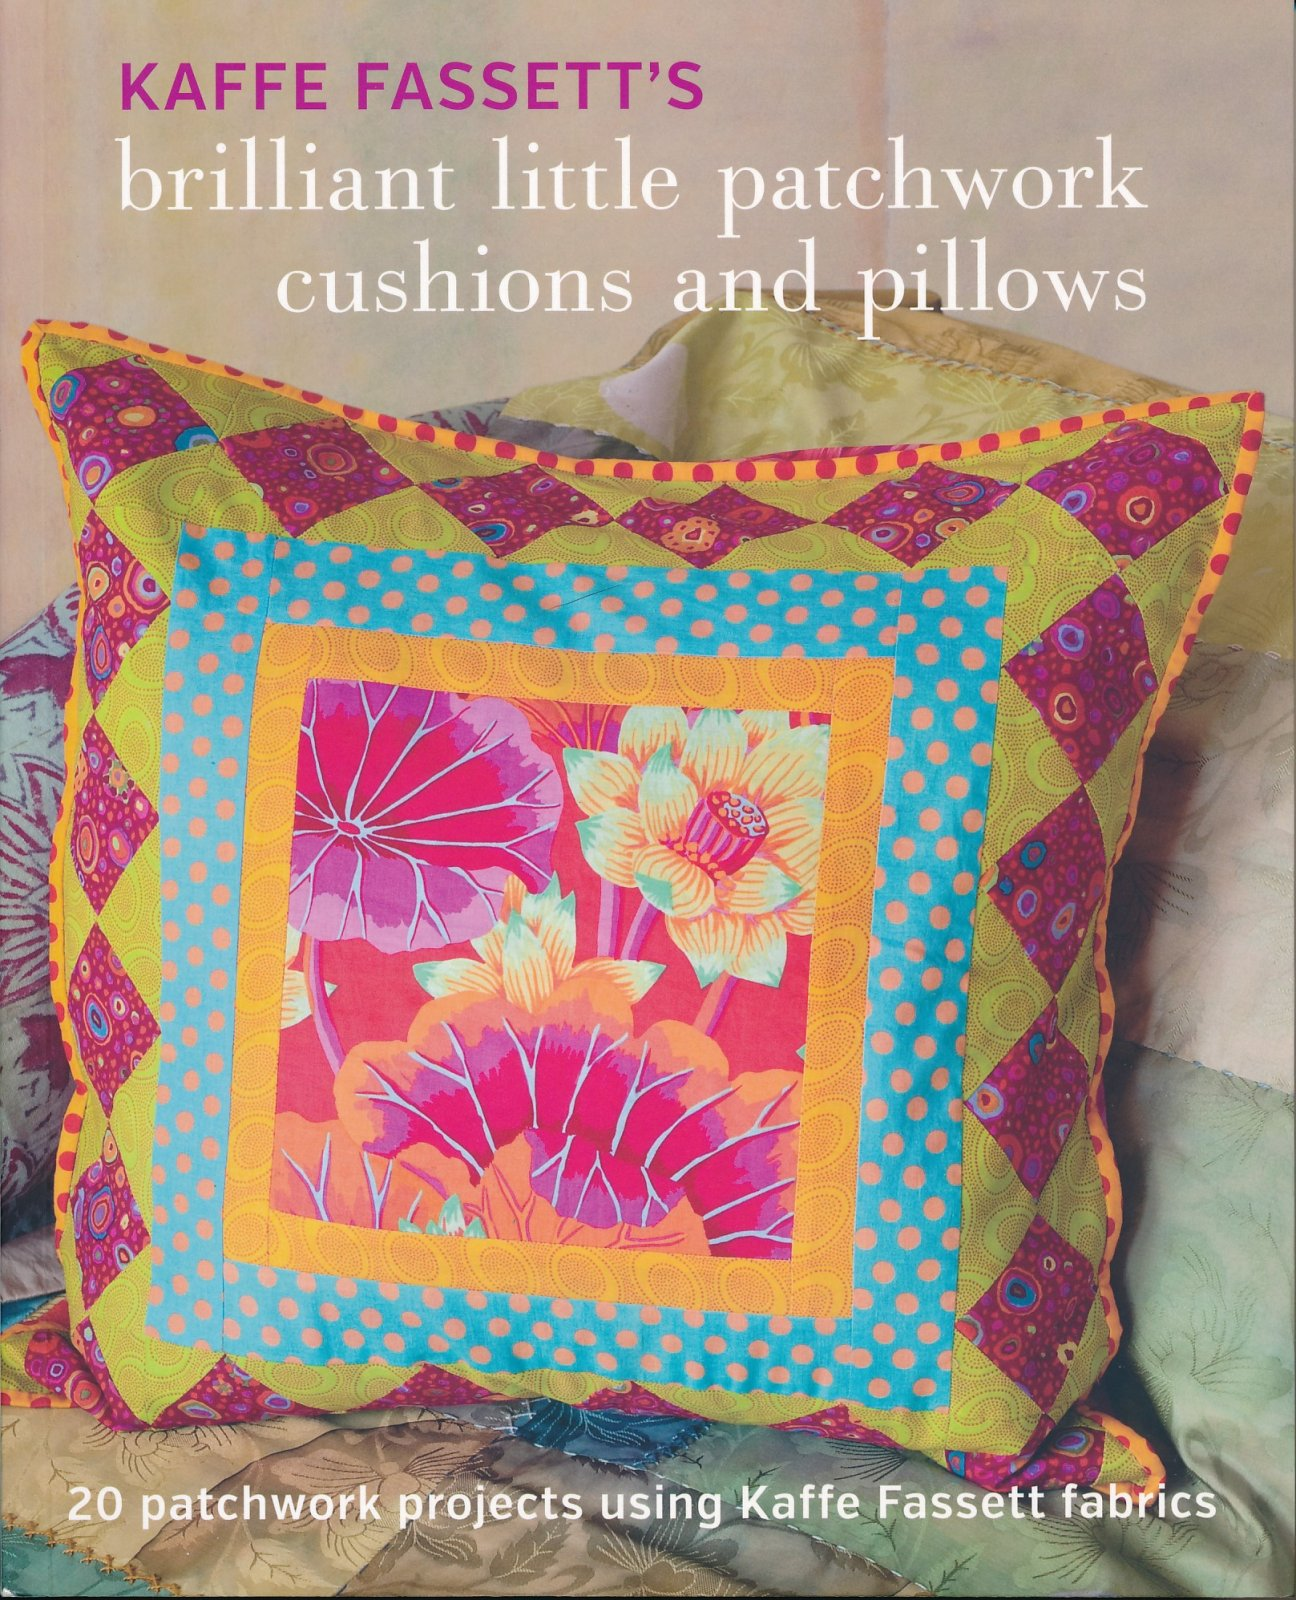 Kaffe Fassett: Brilliant Little Patchworks - Cushions and Pillows